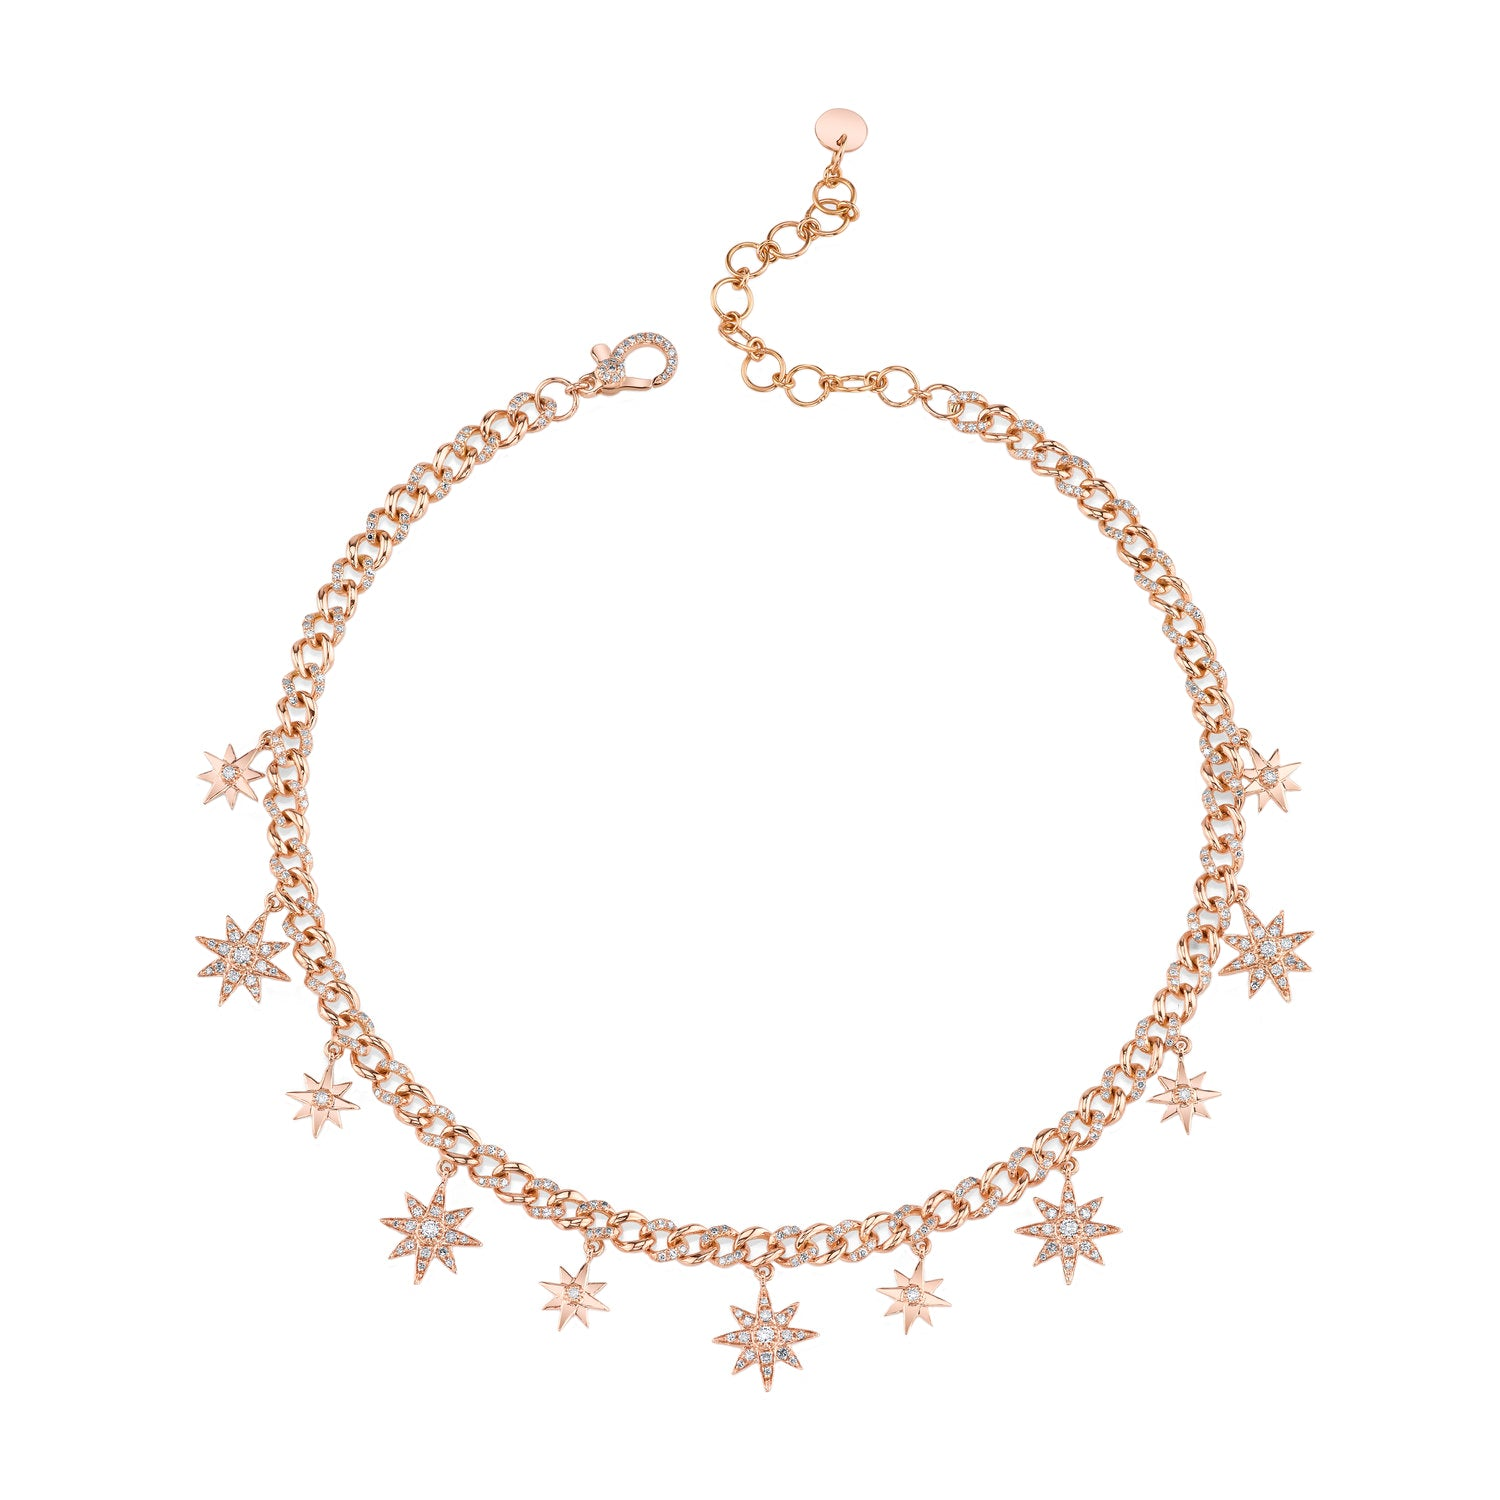 Star Drop Choker by Shay for Broken English Jewelry